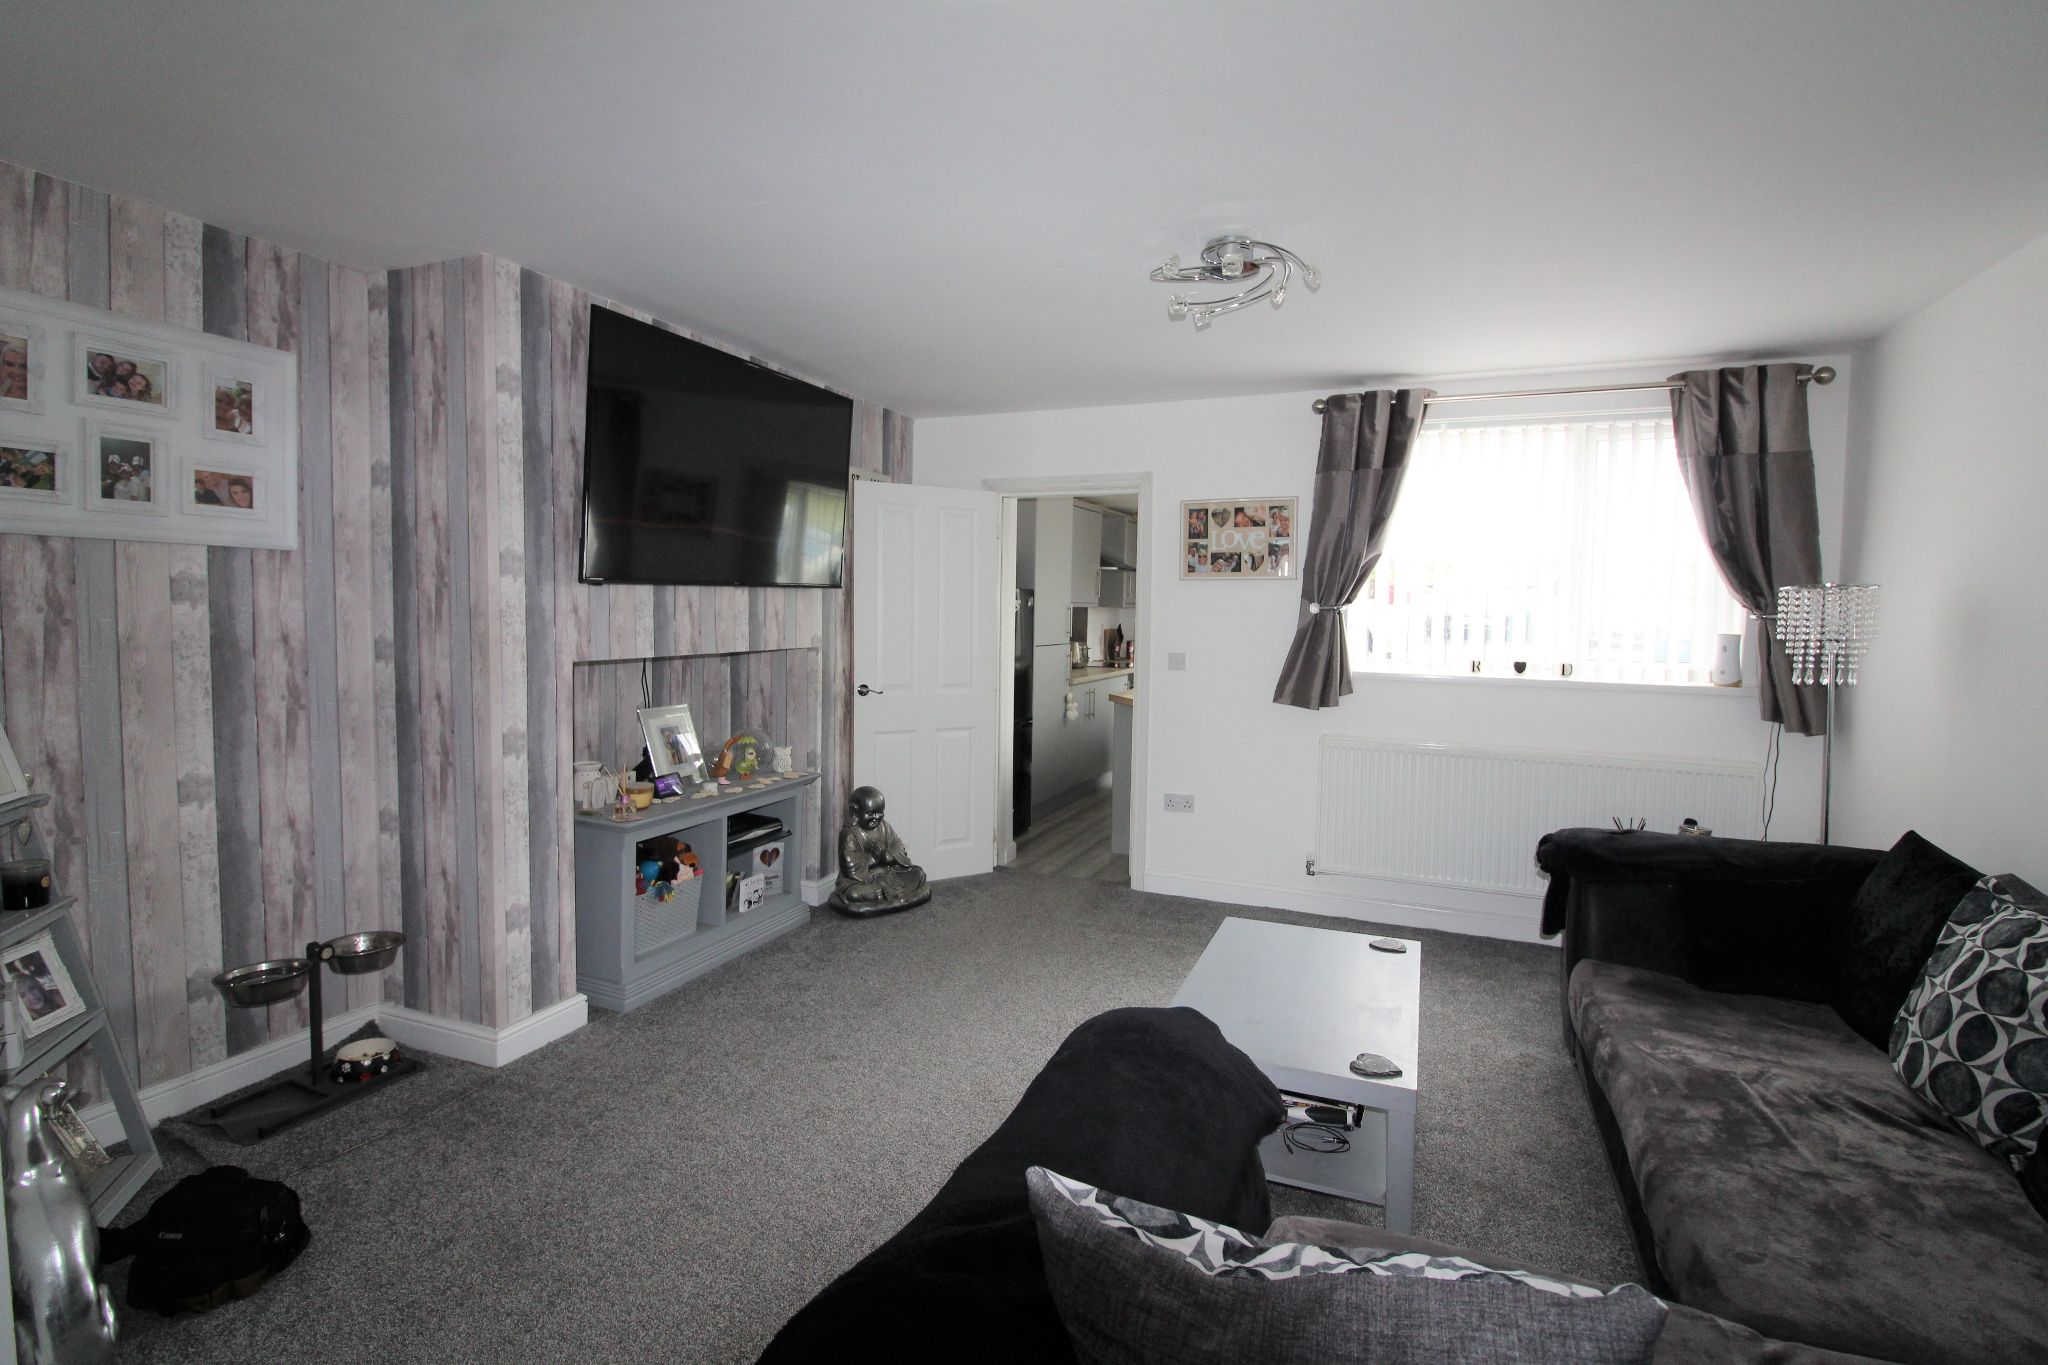 3 bedroom mid terraced house Sale Agreed in Roddymoor - Photograph 7.